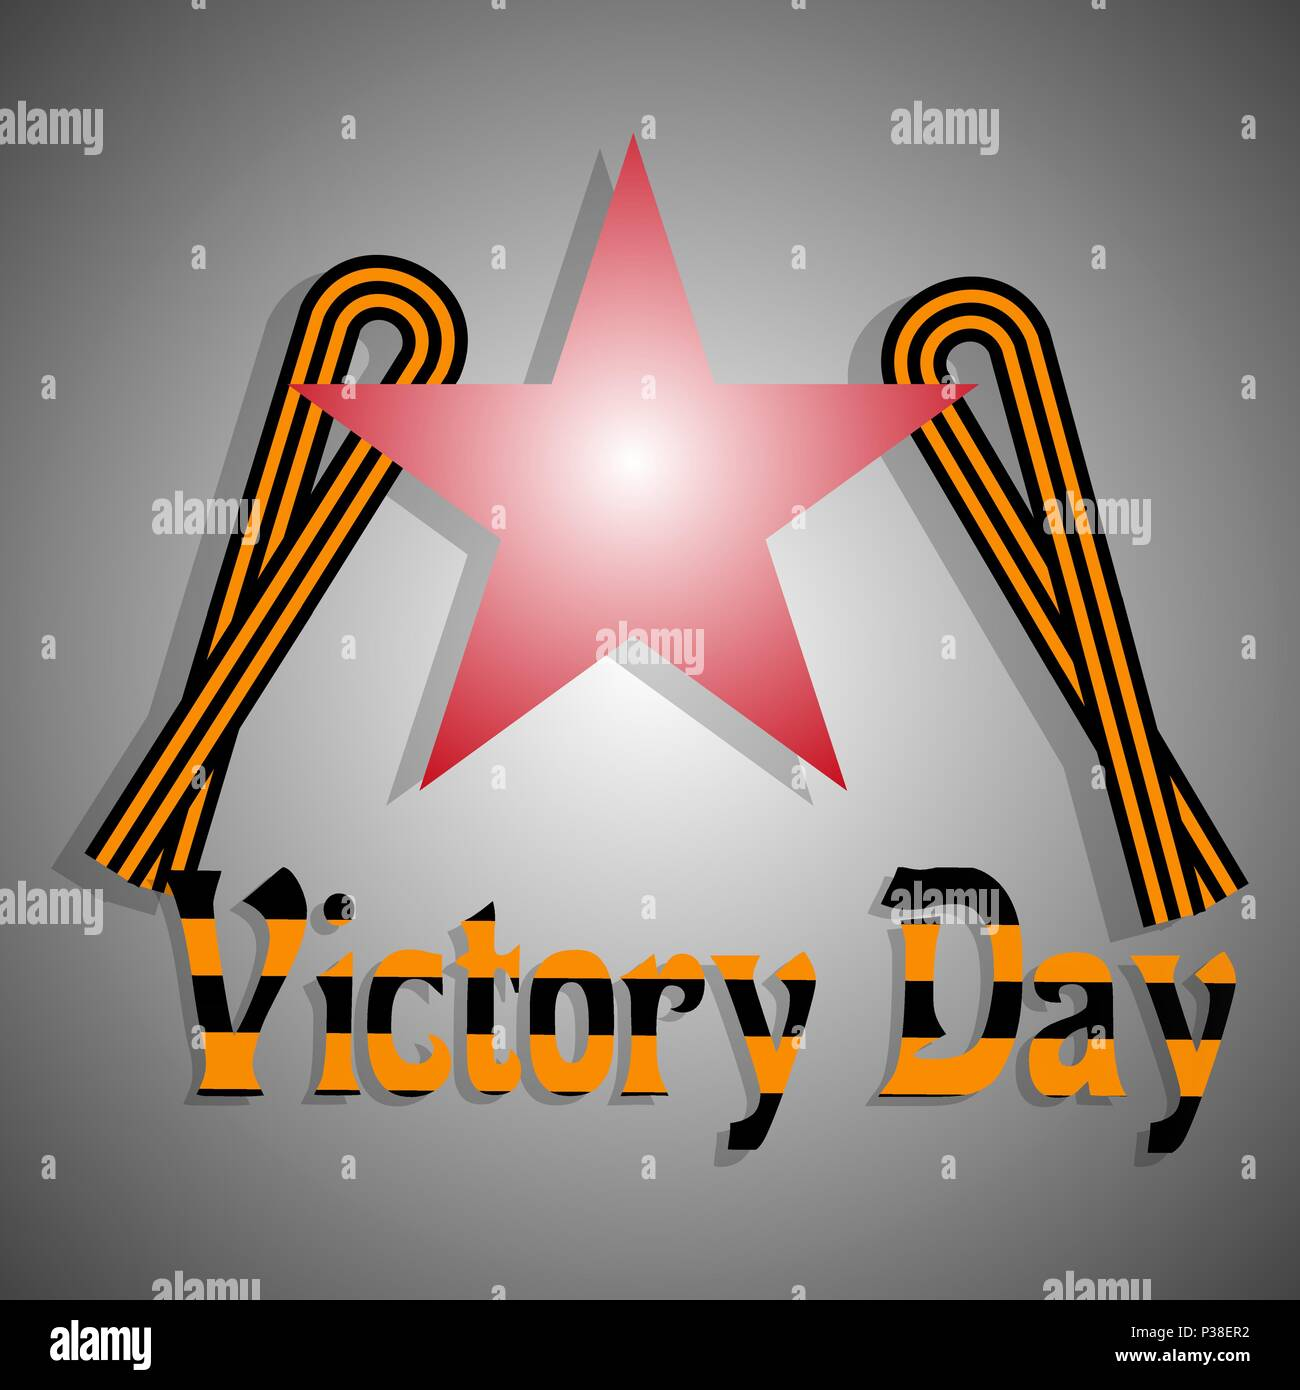 9th May Victory Day. Vector illustration. A congratulatory inscription, a St.George's Ribbon and a star on a gray background with a gradient. - Stock Vector